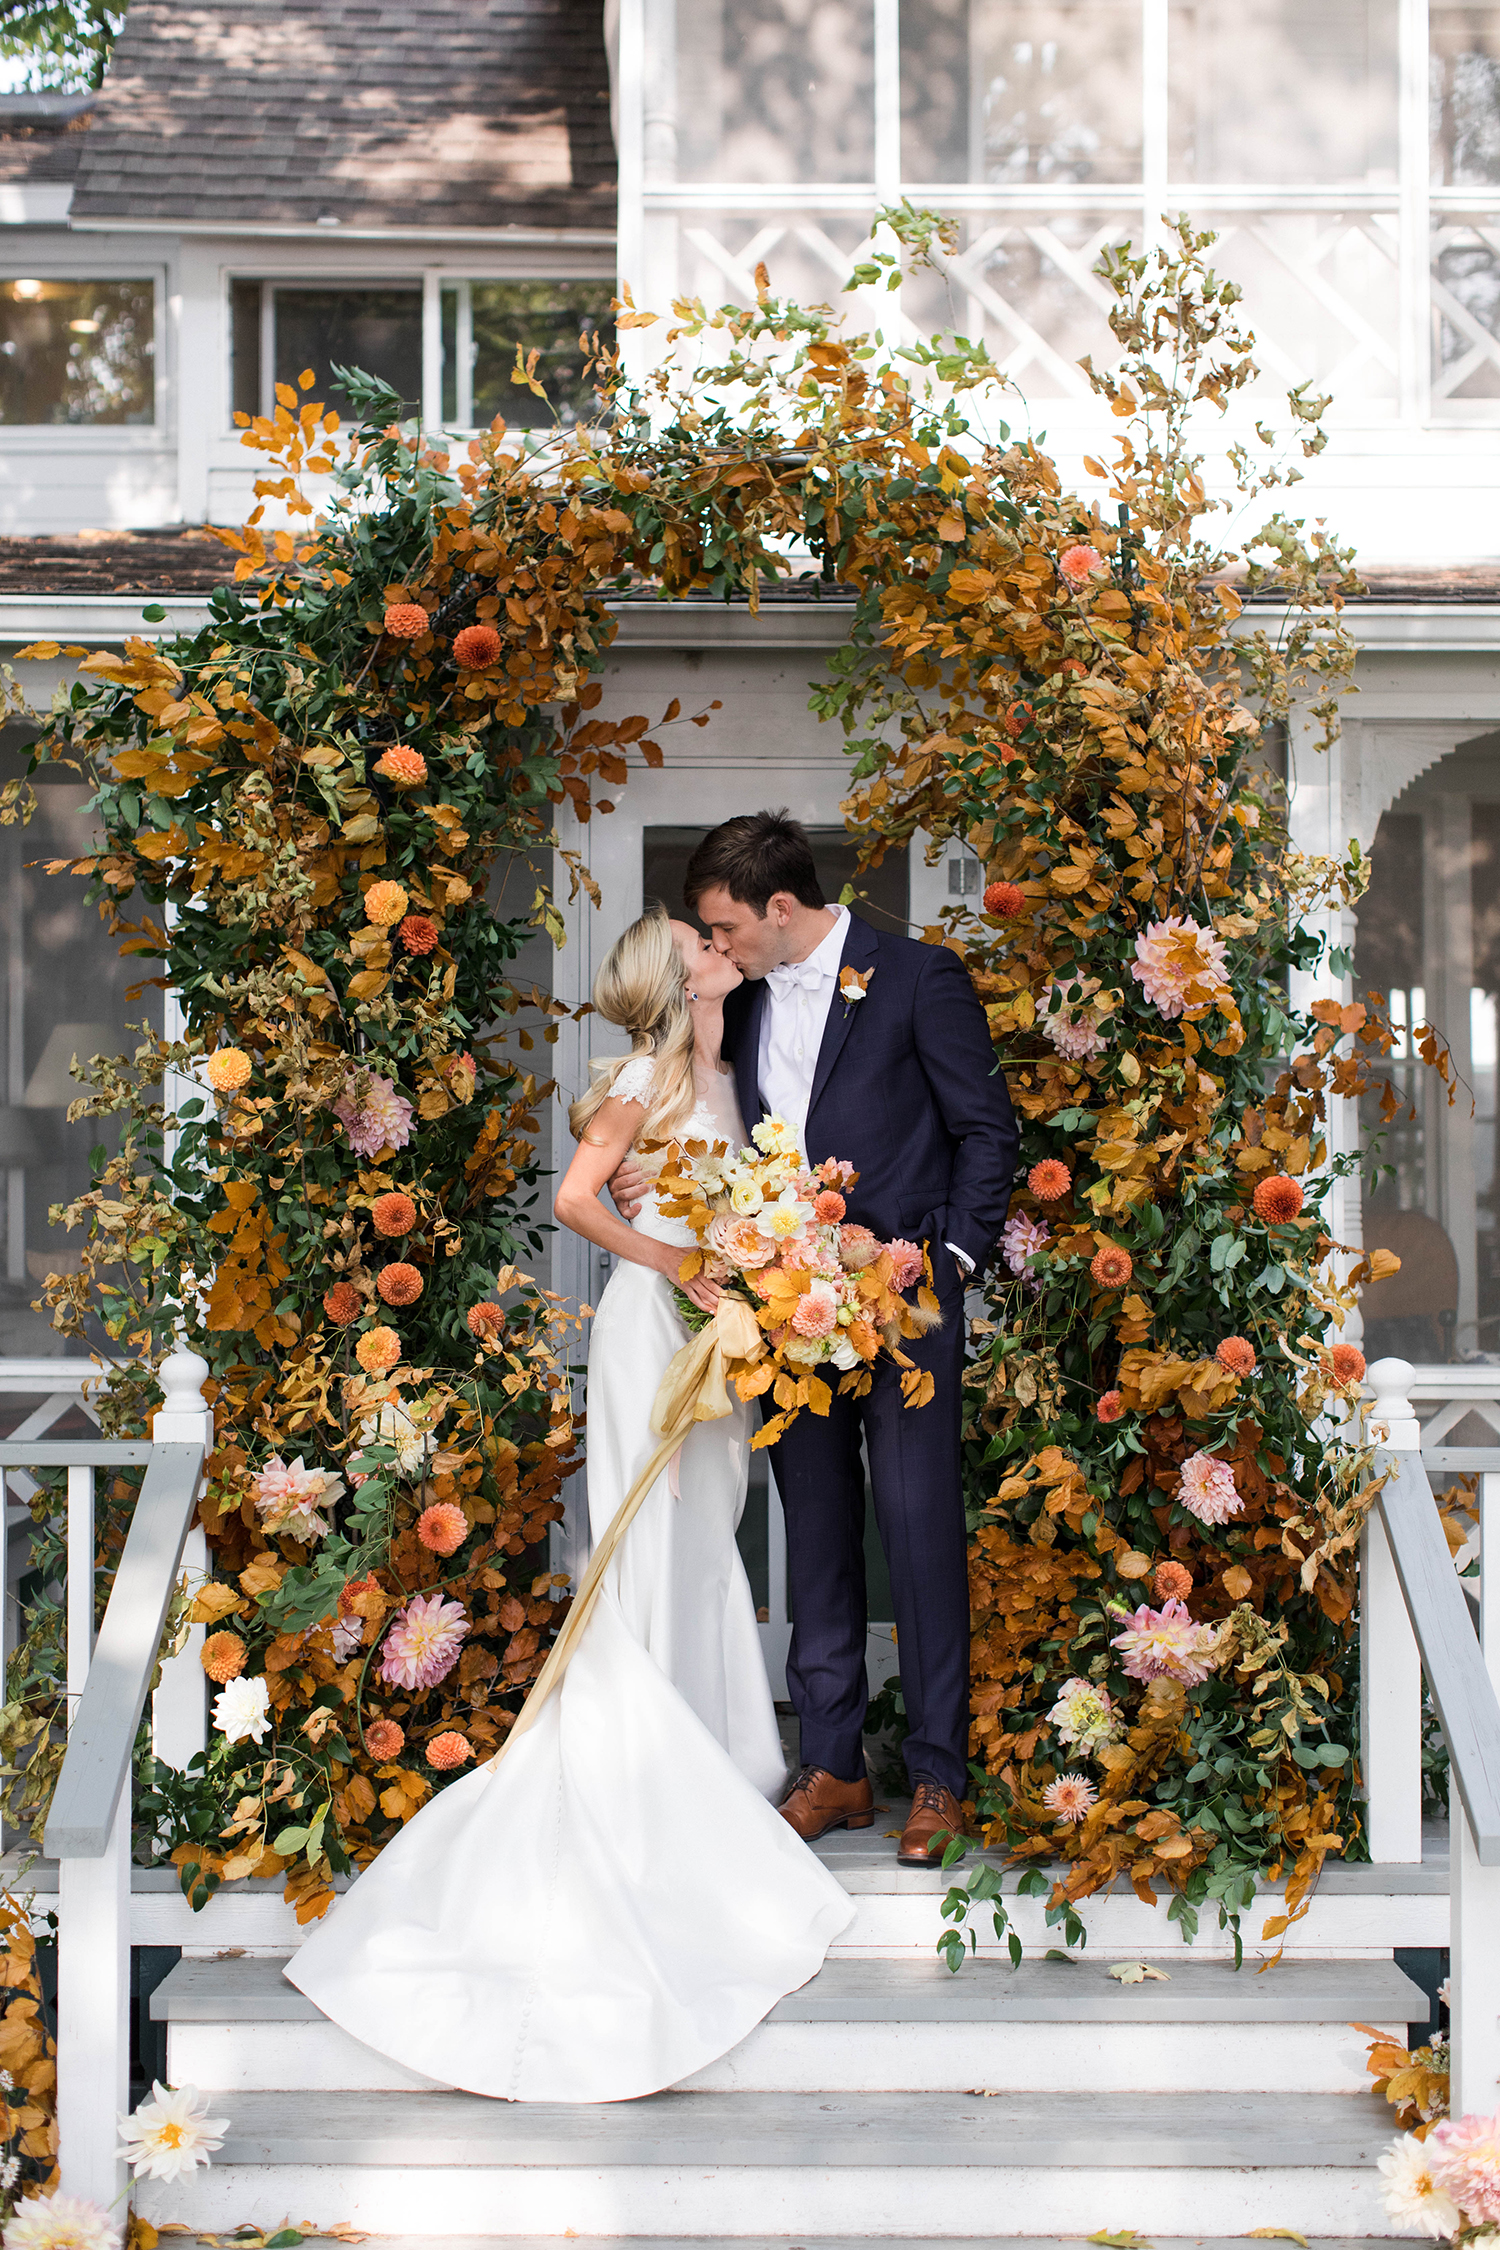 12 Modern Ideas To Plan The Ultimate Fall Wedding